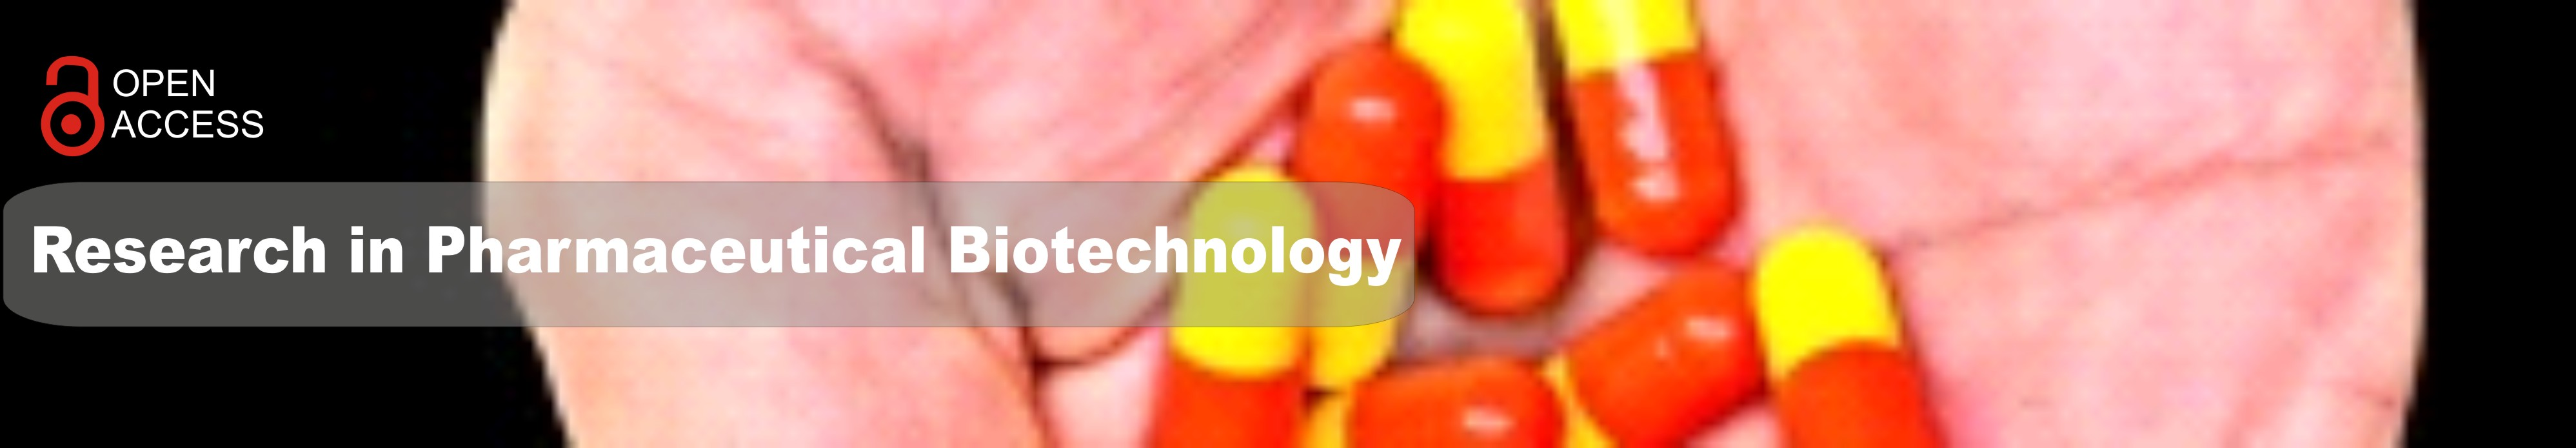 Research in Pharmaceutical Biotechnology